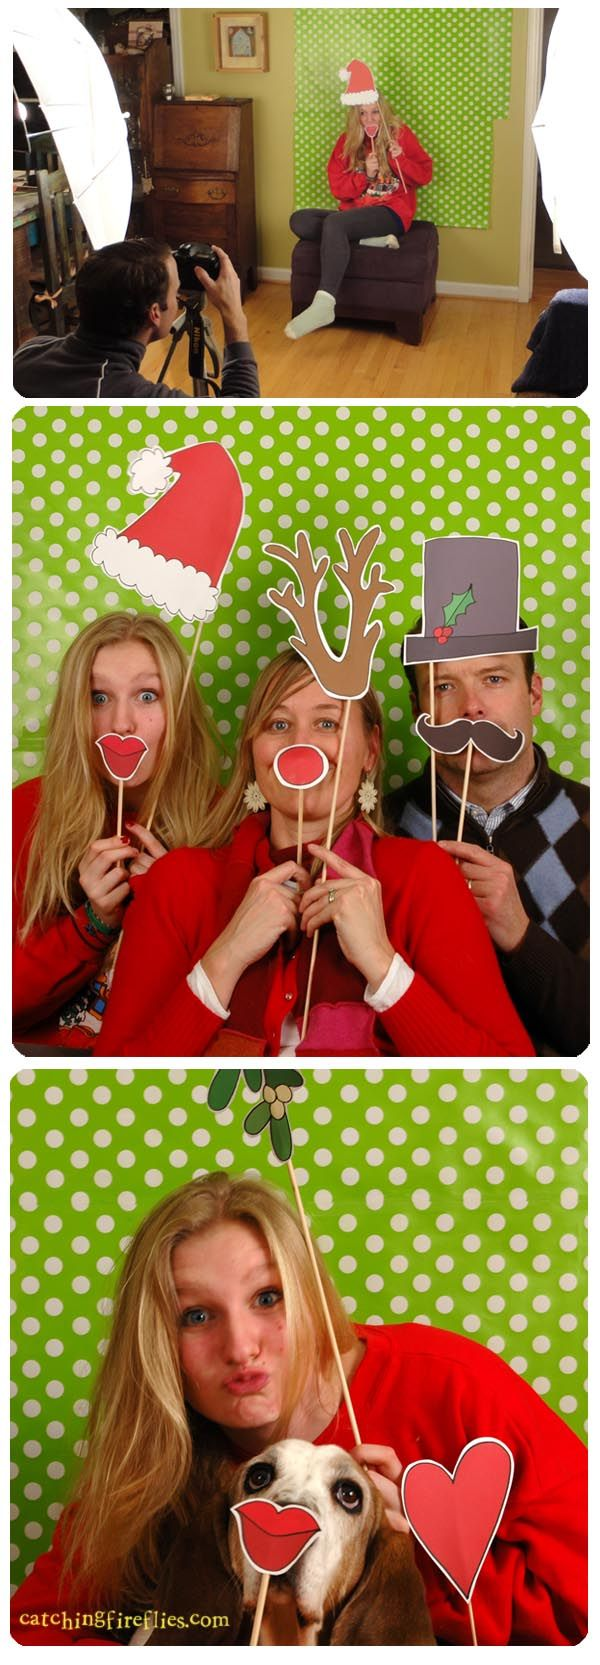 Christmas Booth Ideas Cute Christmas Photo Booth Props Nol Pinterest Christmas